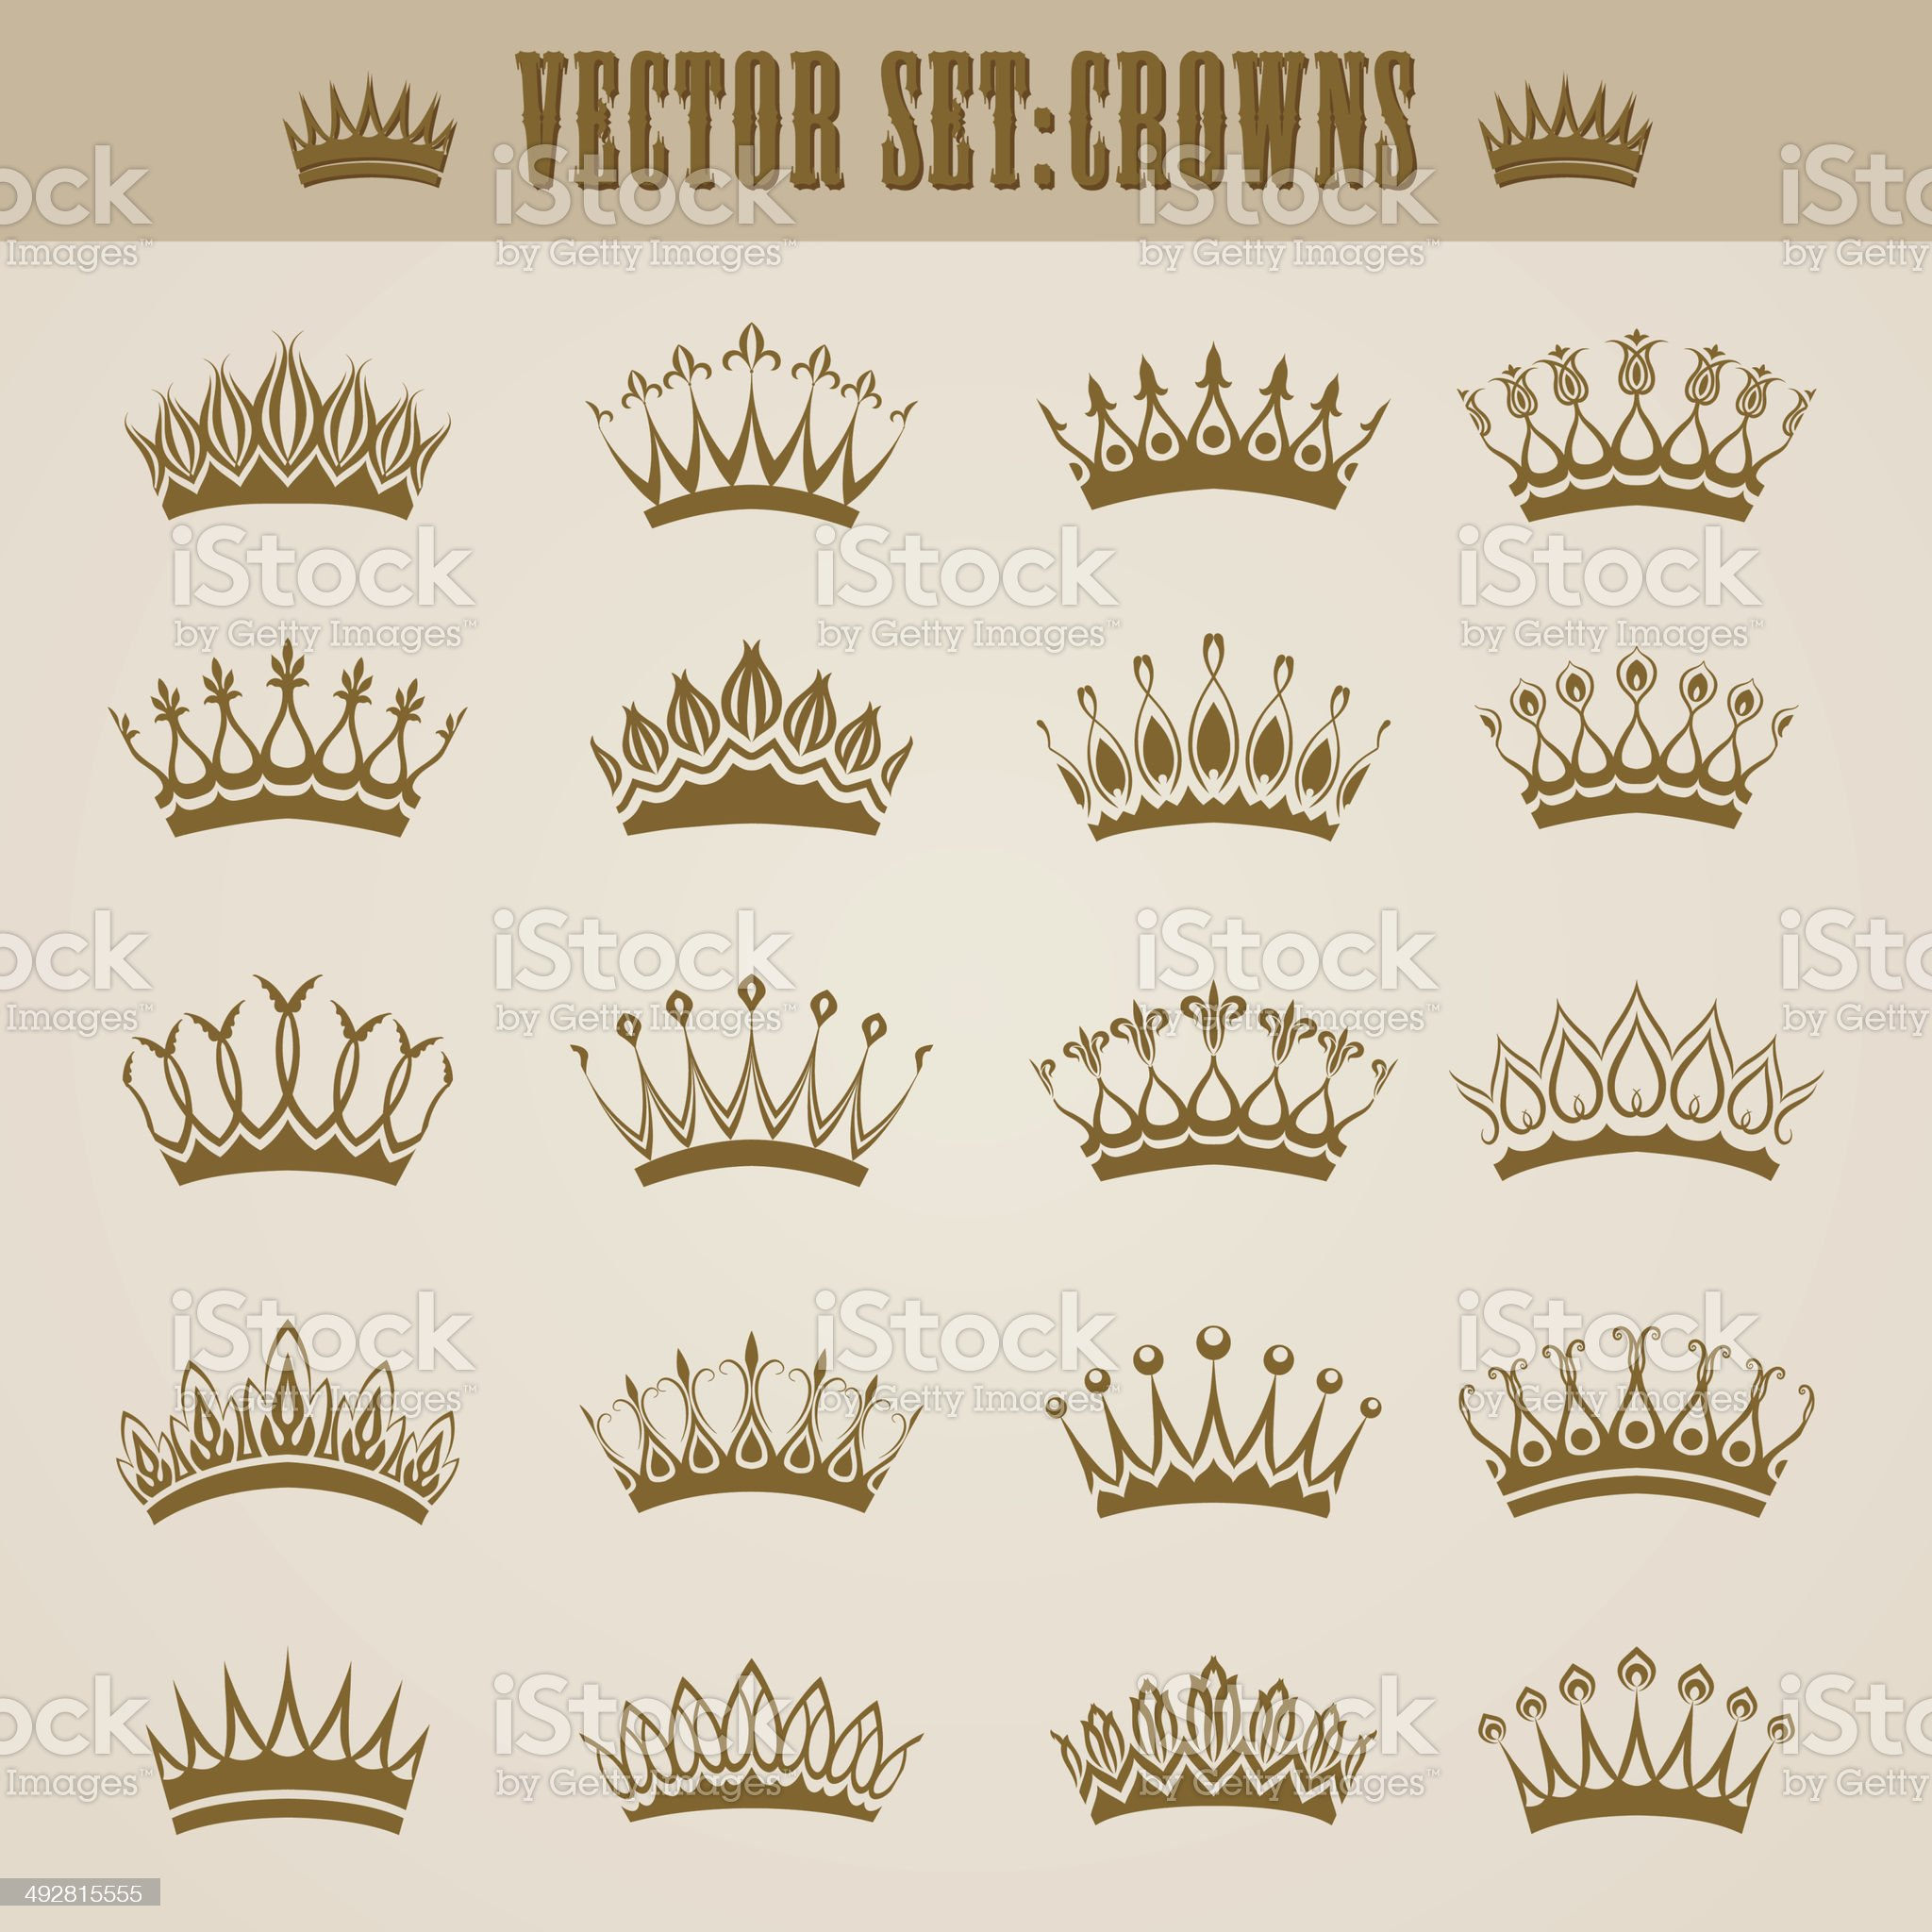 Victorian crowns royalty-free stock vector art